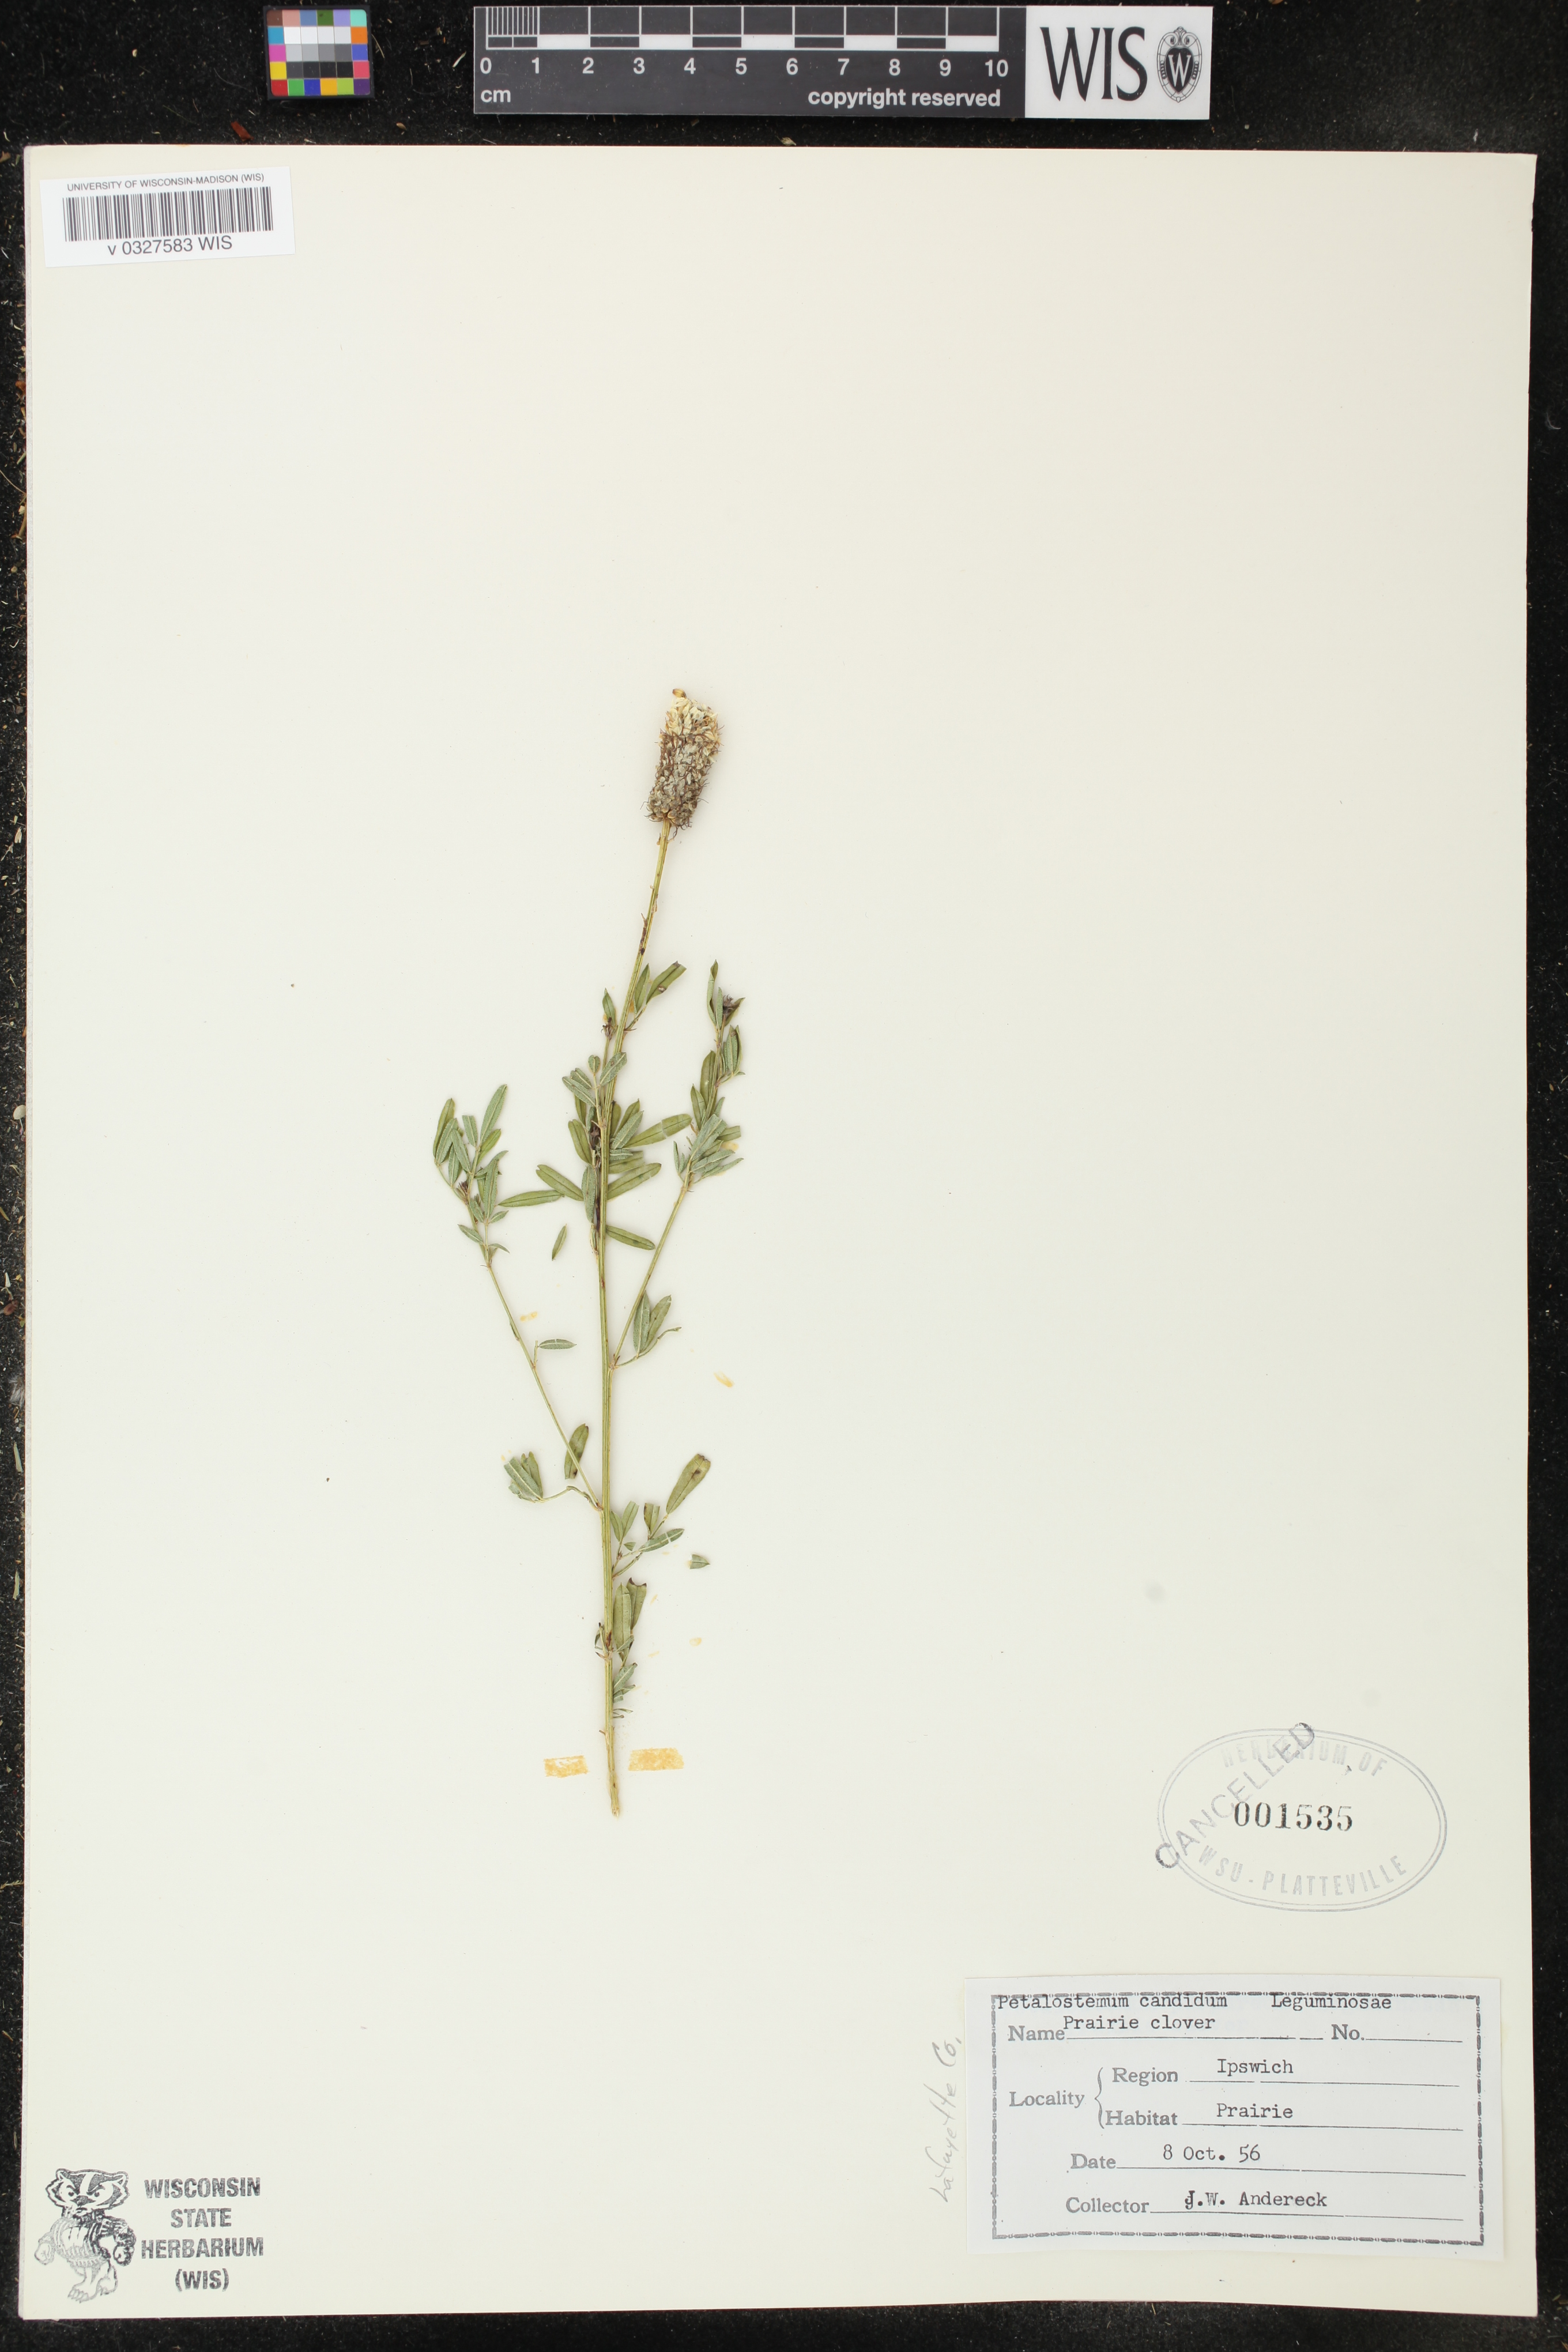 White Prairie Clover specimen collected near Platteville, Wisconsin on October 8, 1956.